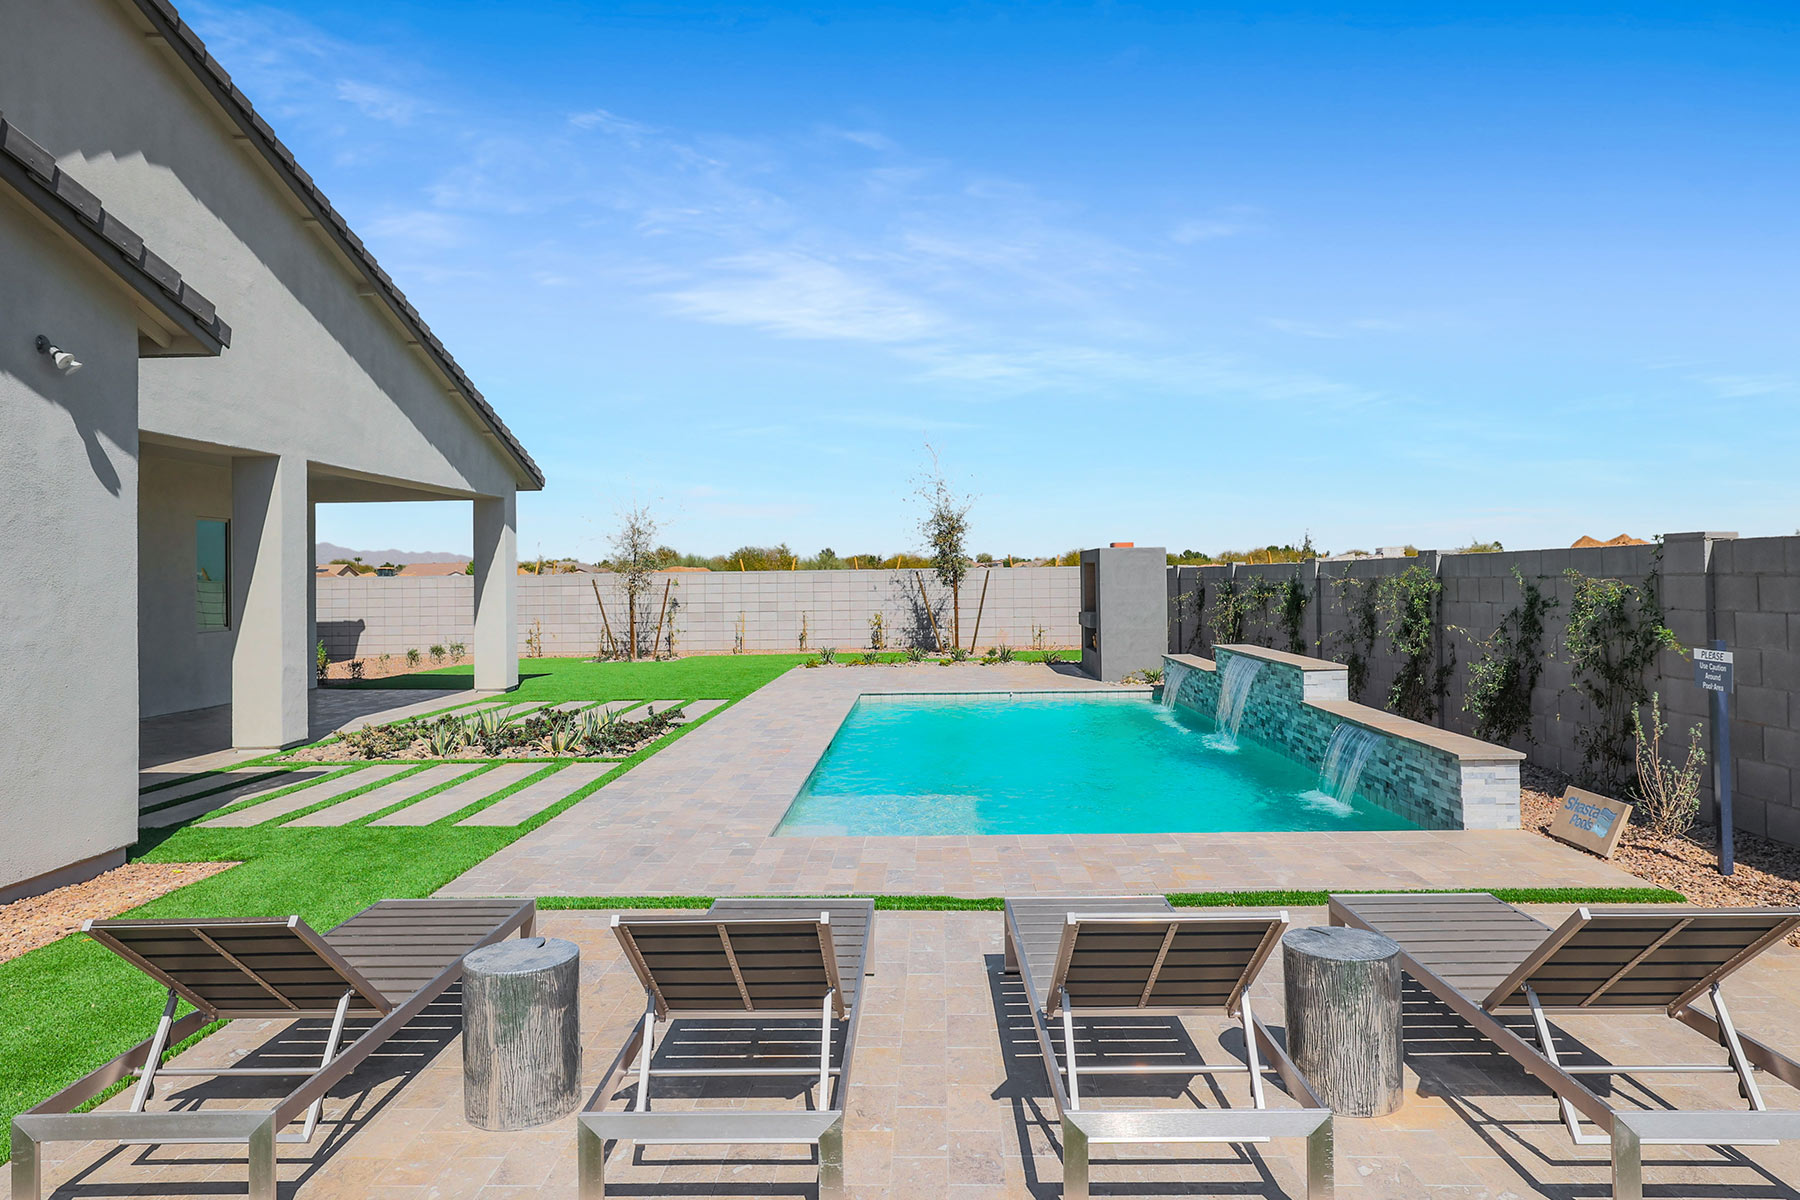 Brookstone Plan WaterFeatures at Azure Canyon in Litchfield Park Arizona by Mattamy Homes